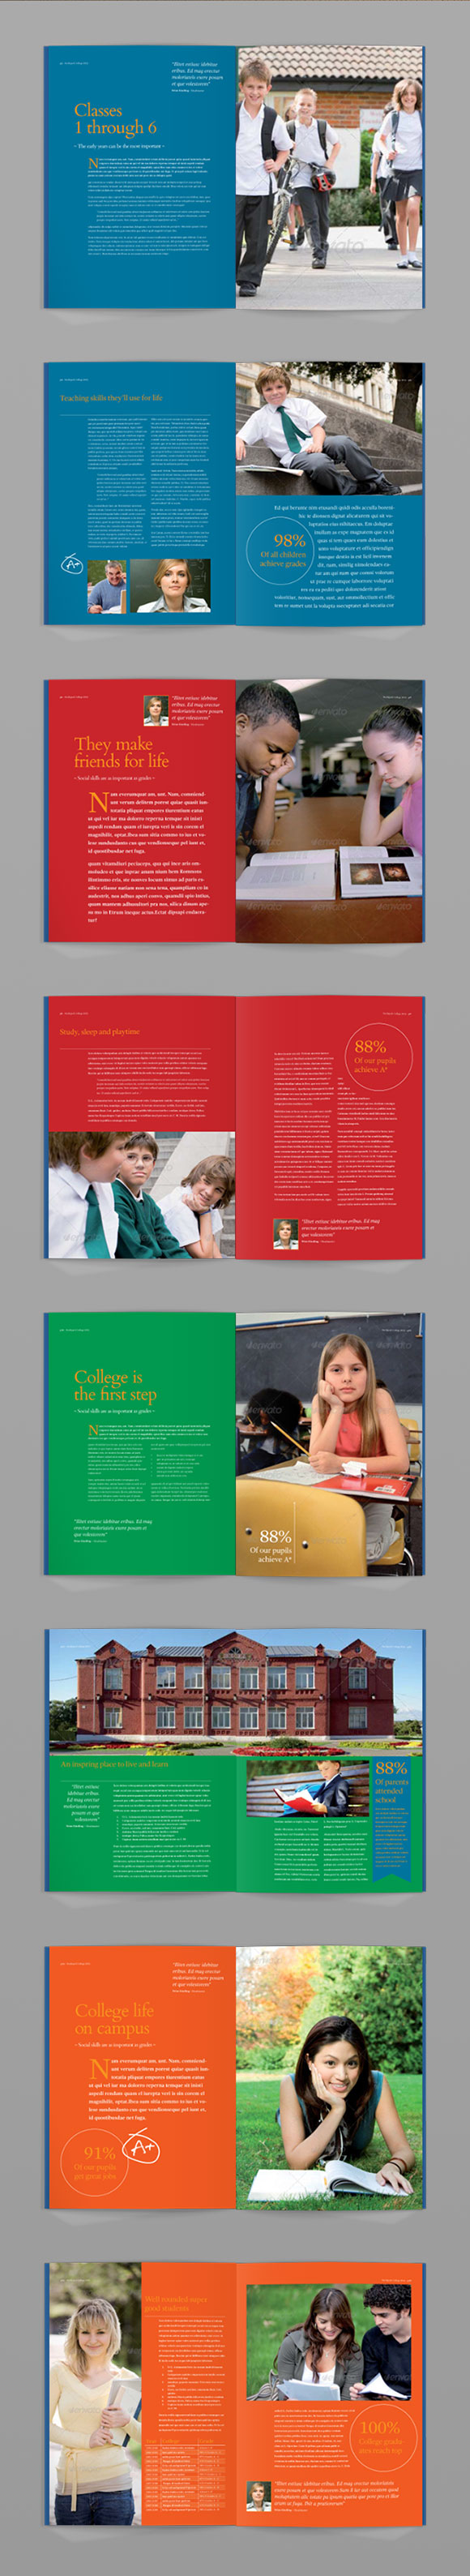 InDesign achievements brochure template page preview